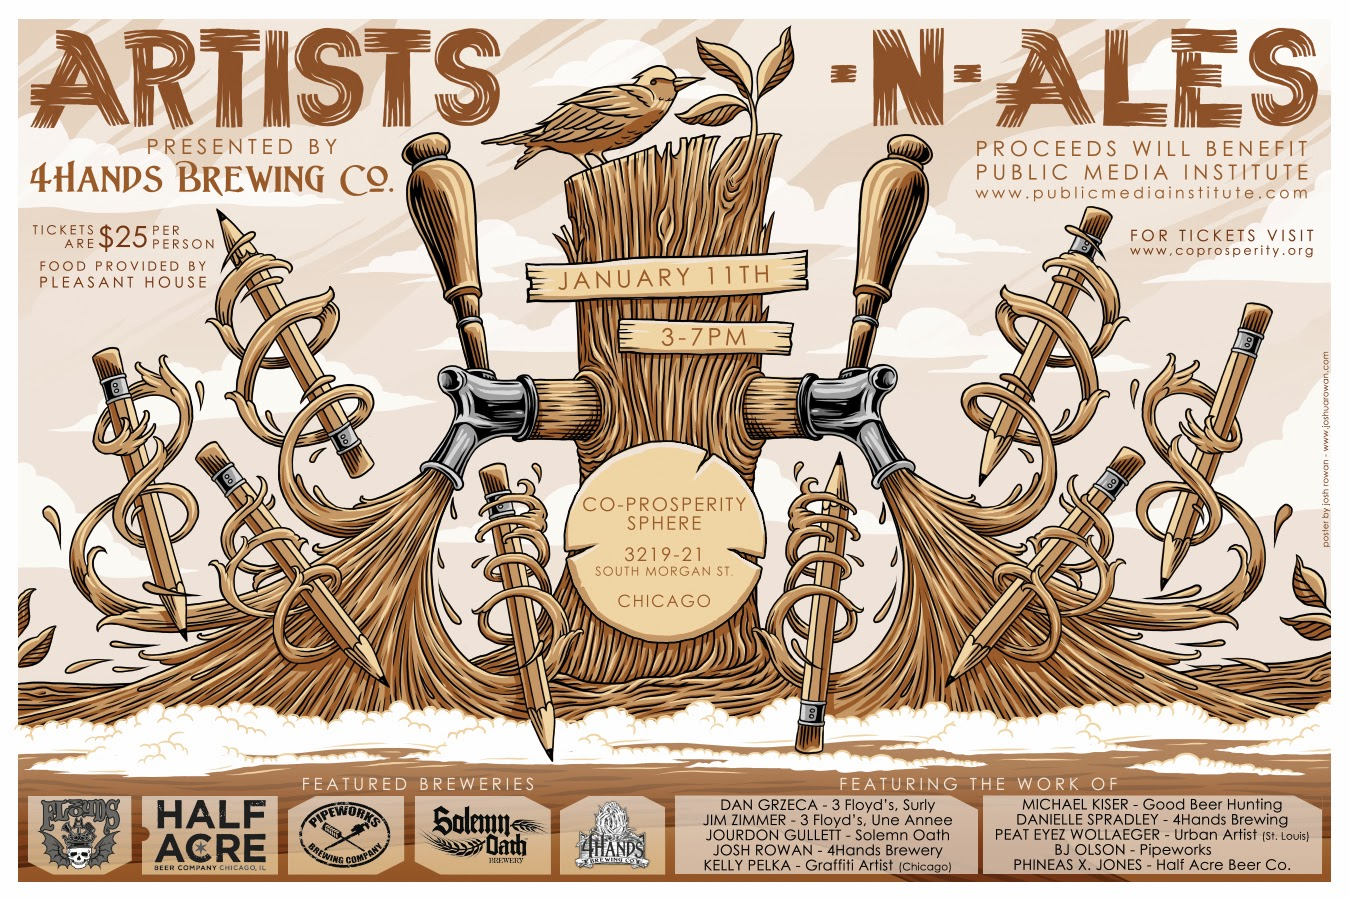 Hail To The Ale: 4 Hands Brewing Presents a Uniquely Inspired Event